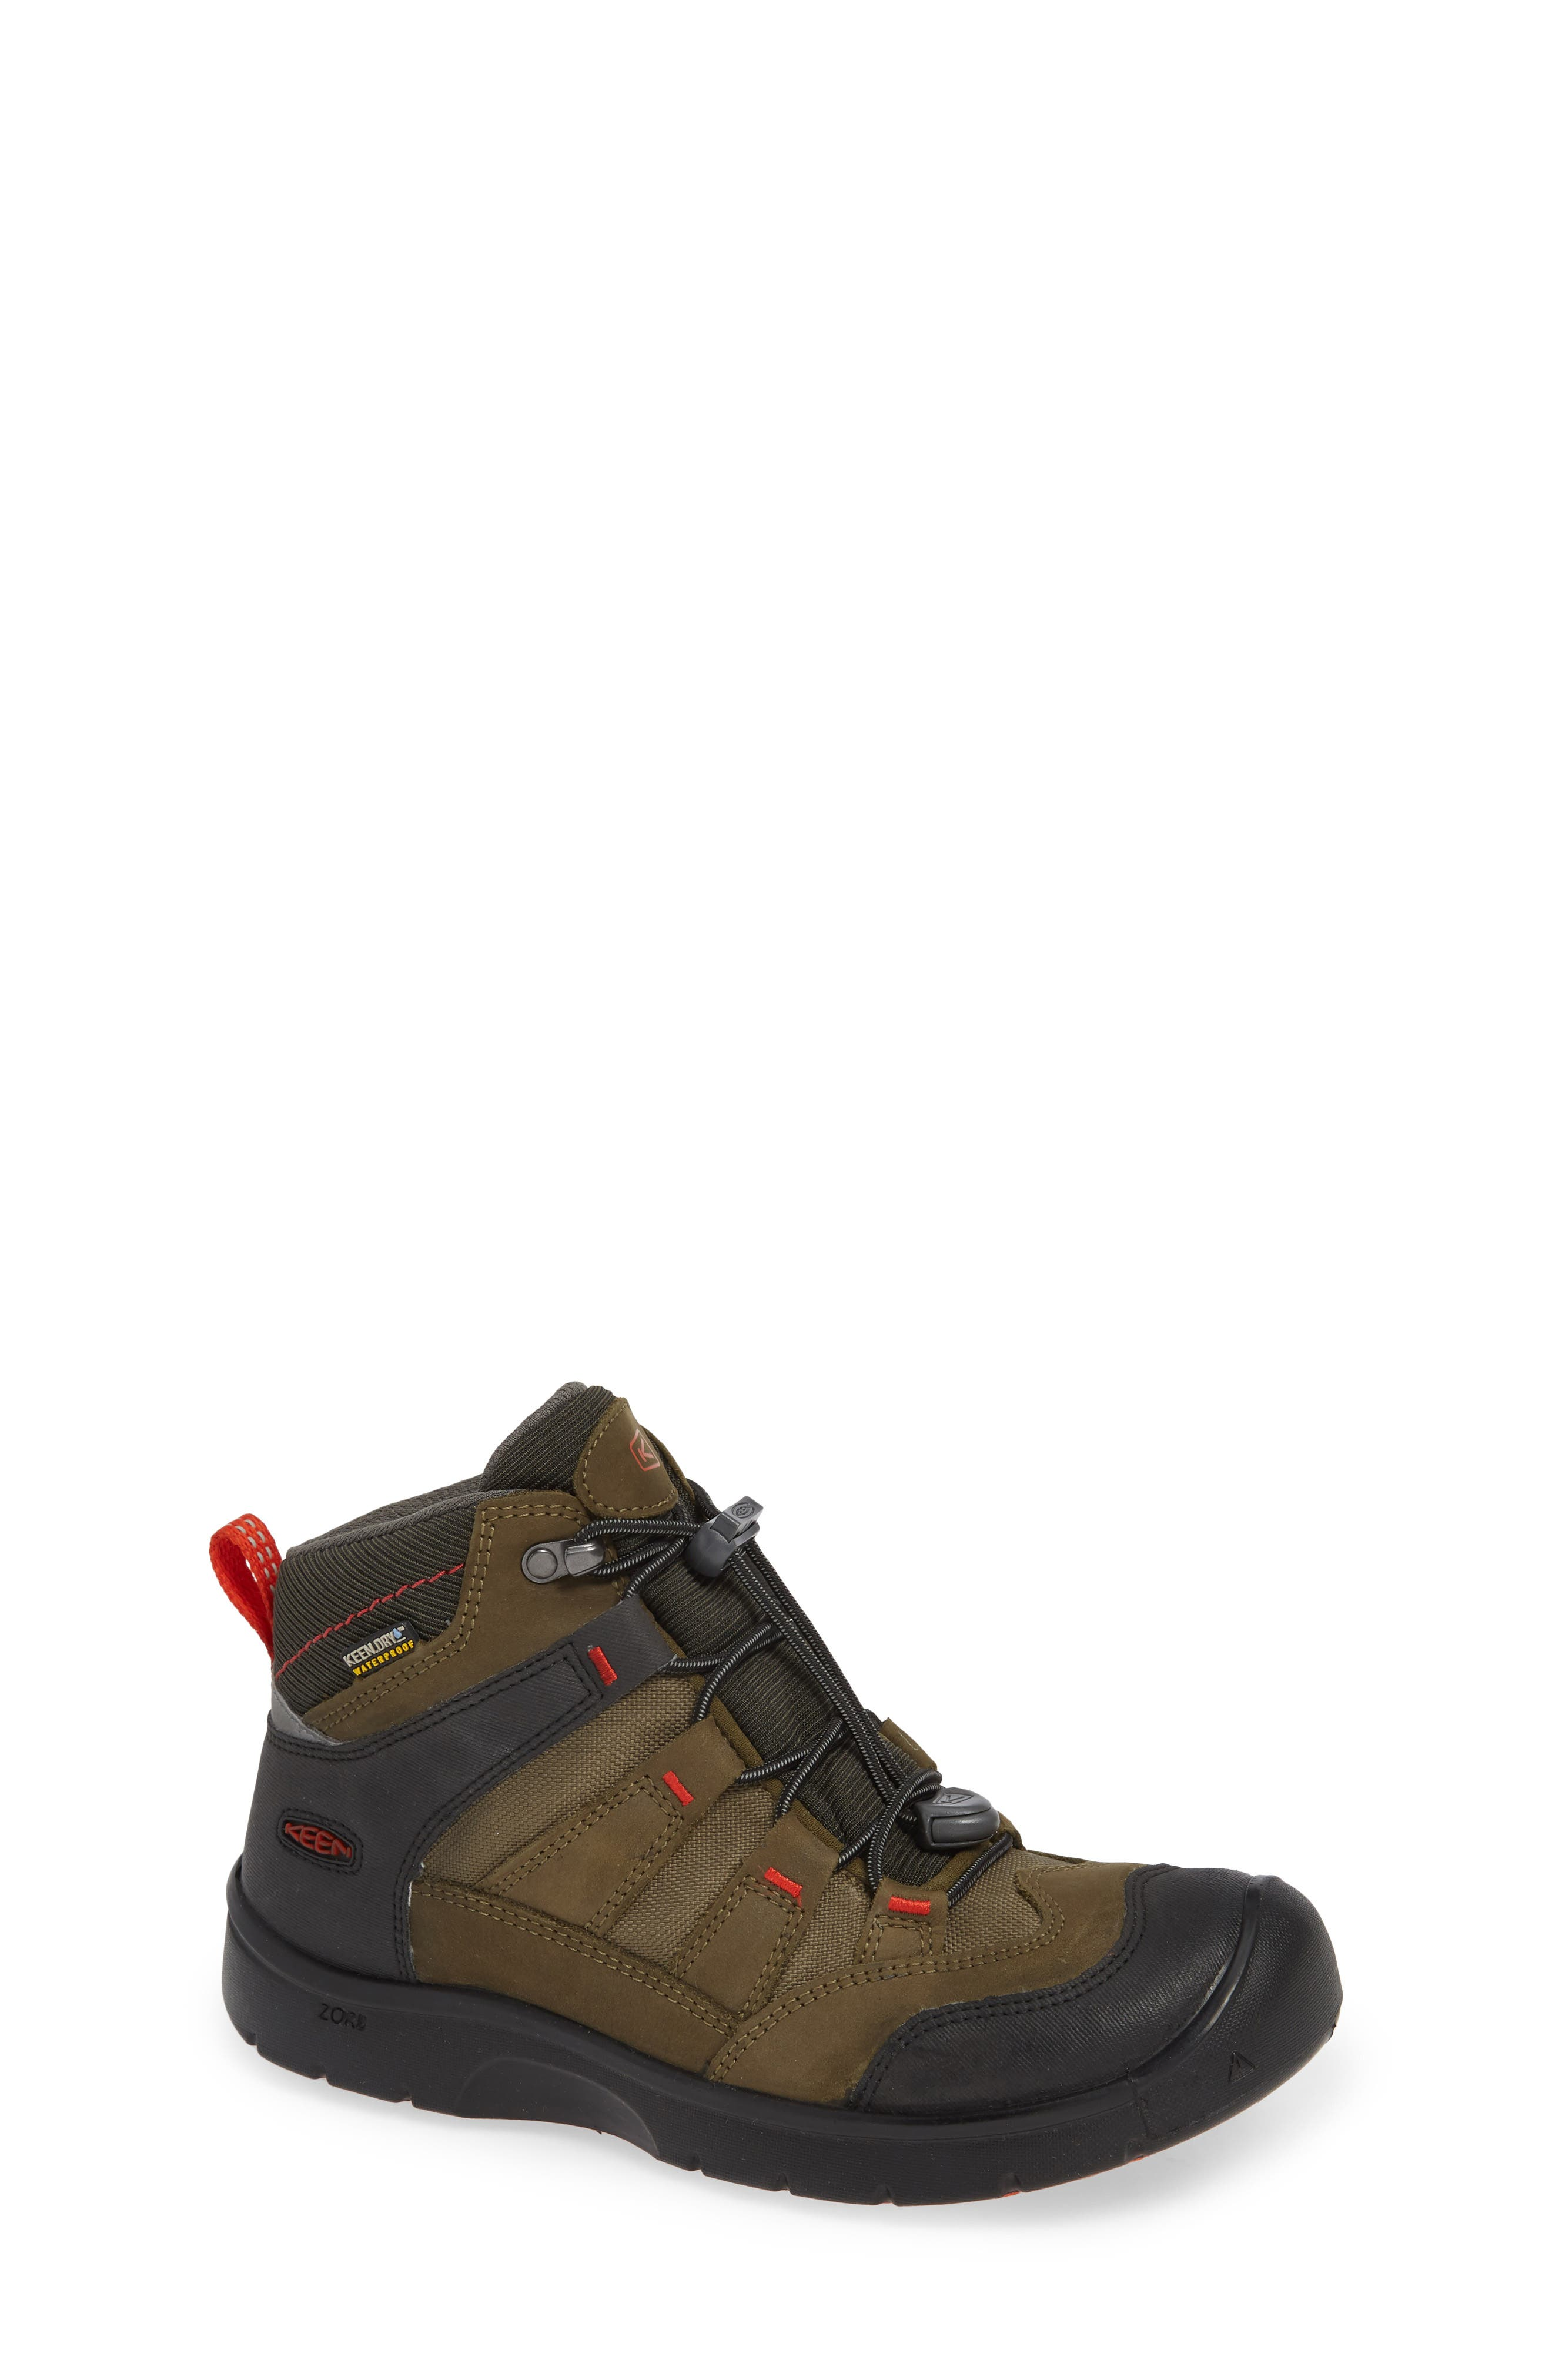 Hikeport Strap Waterproof Mid Boot,                         Main,                         color, MARTINI OLIVE/ PUREED PUMPKIN